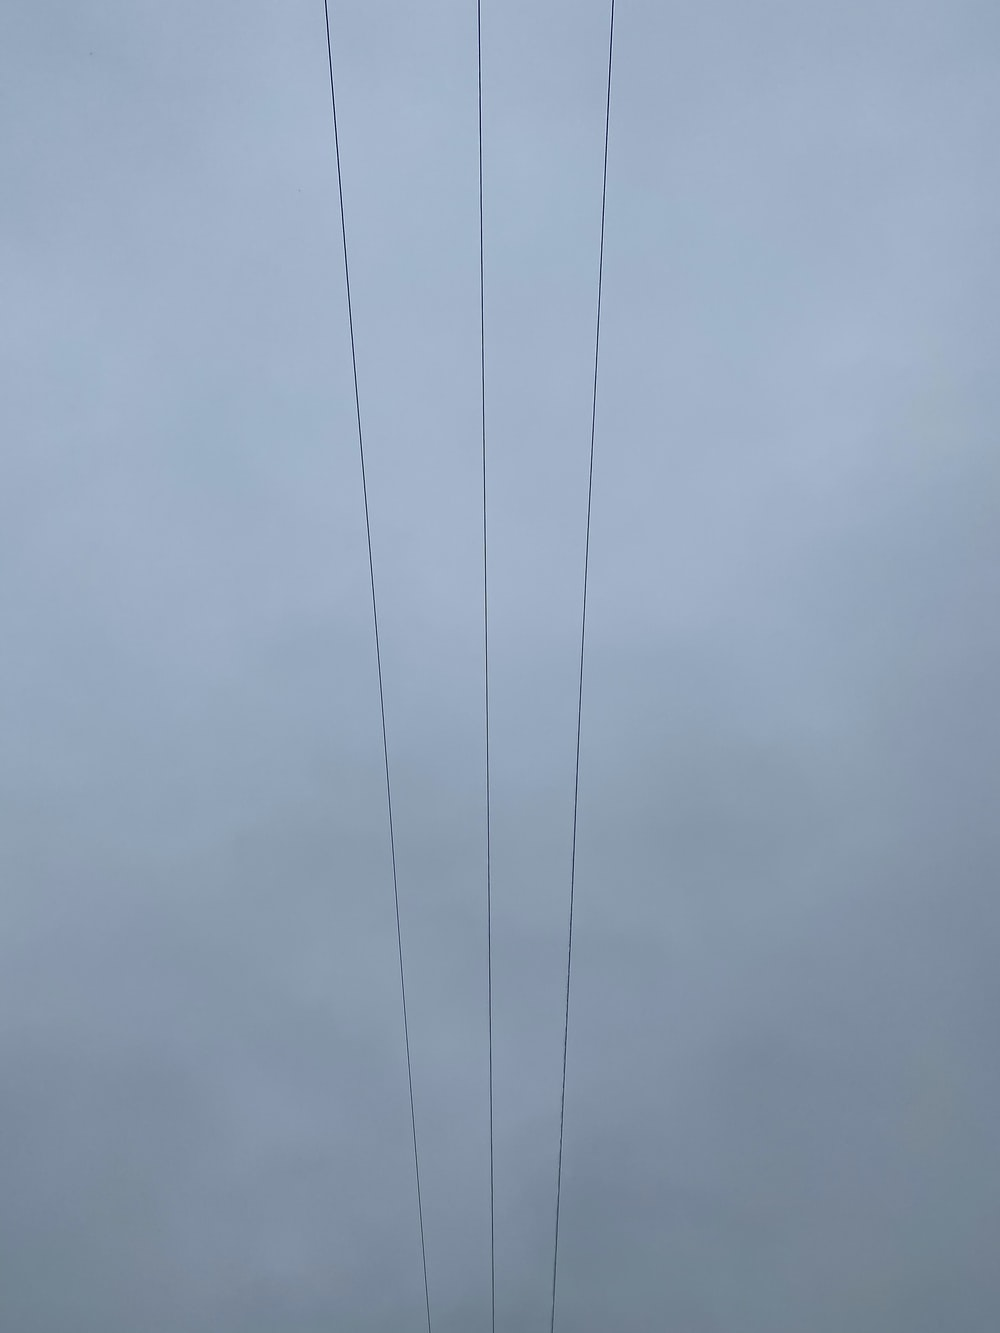 black coated wire under gray clouds